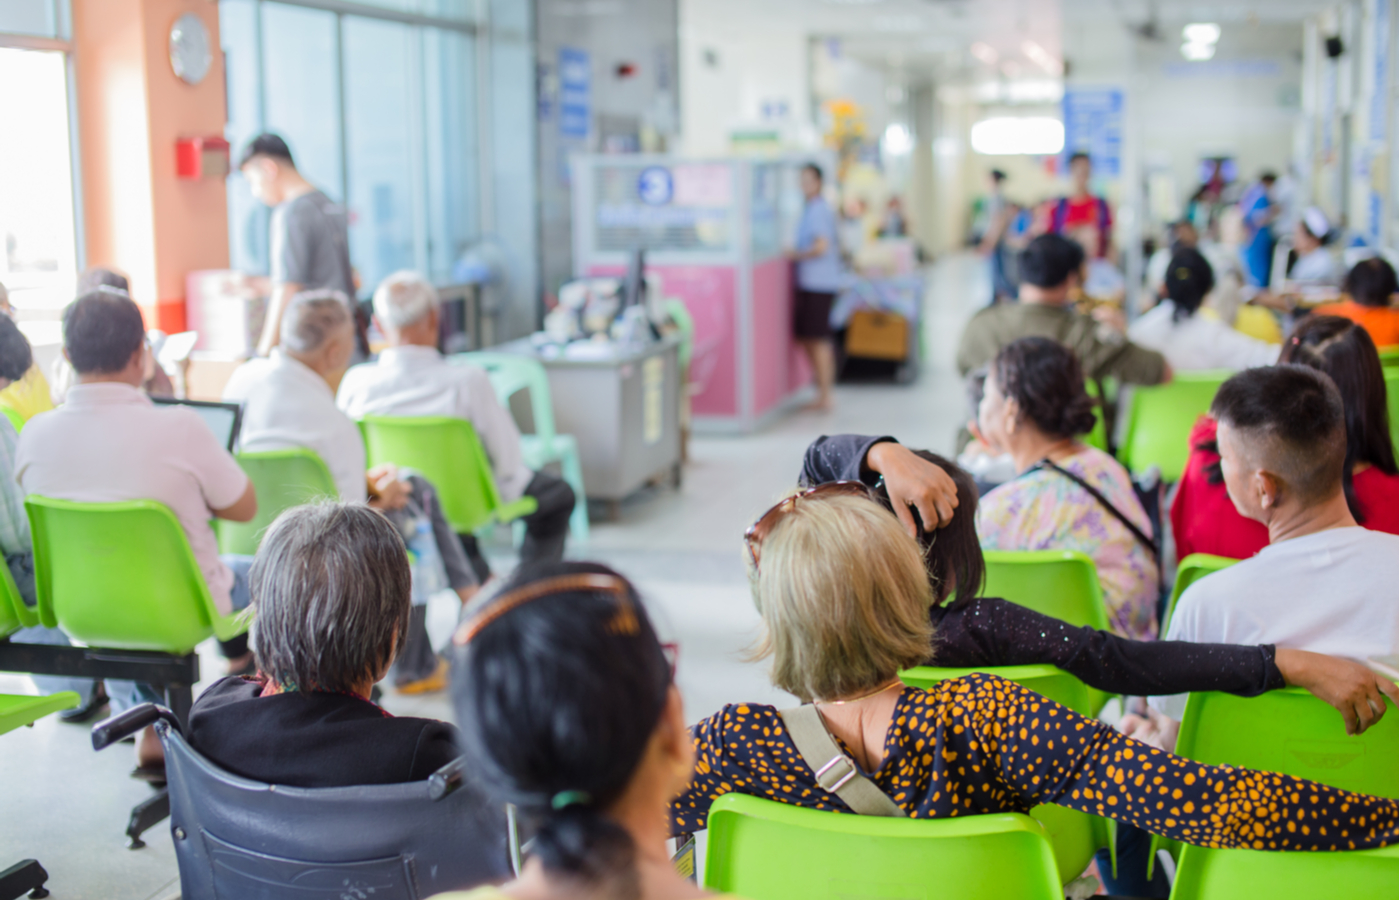 patients in hospital waiting area